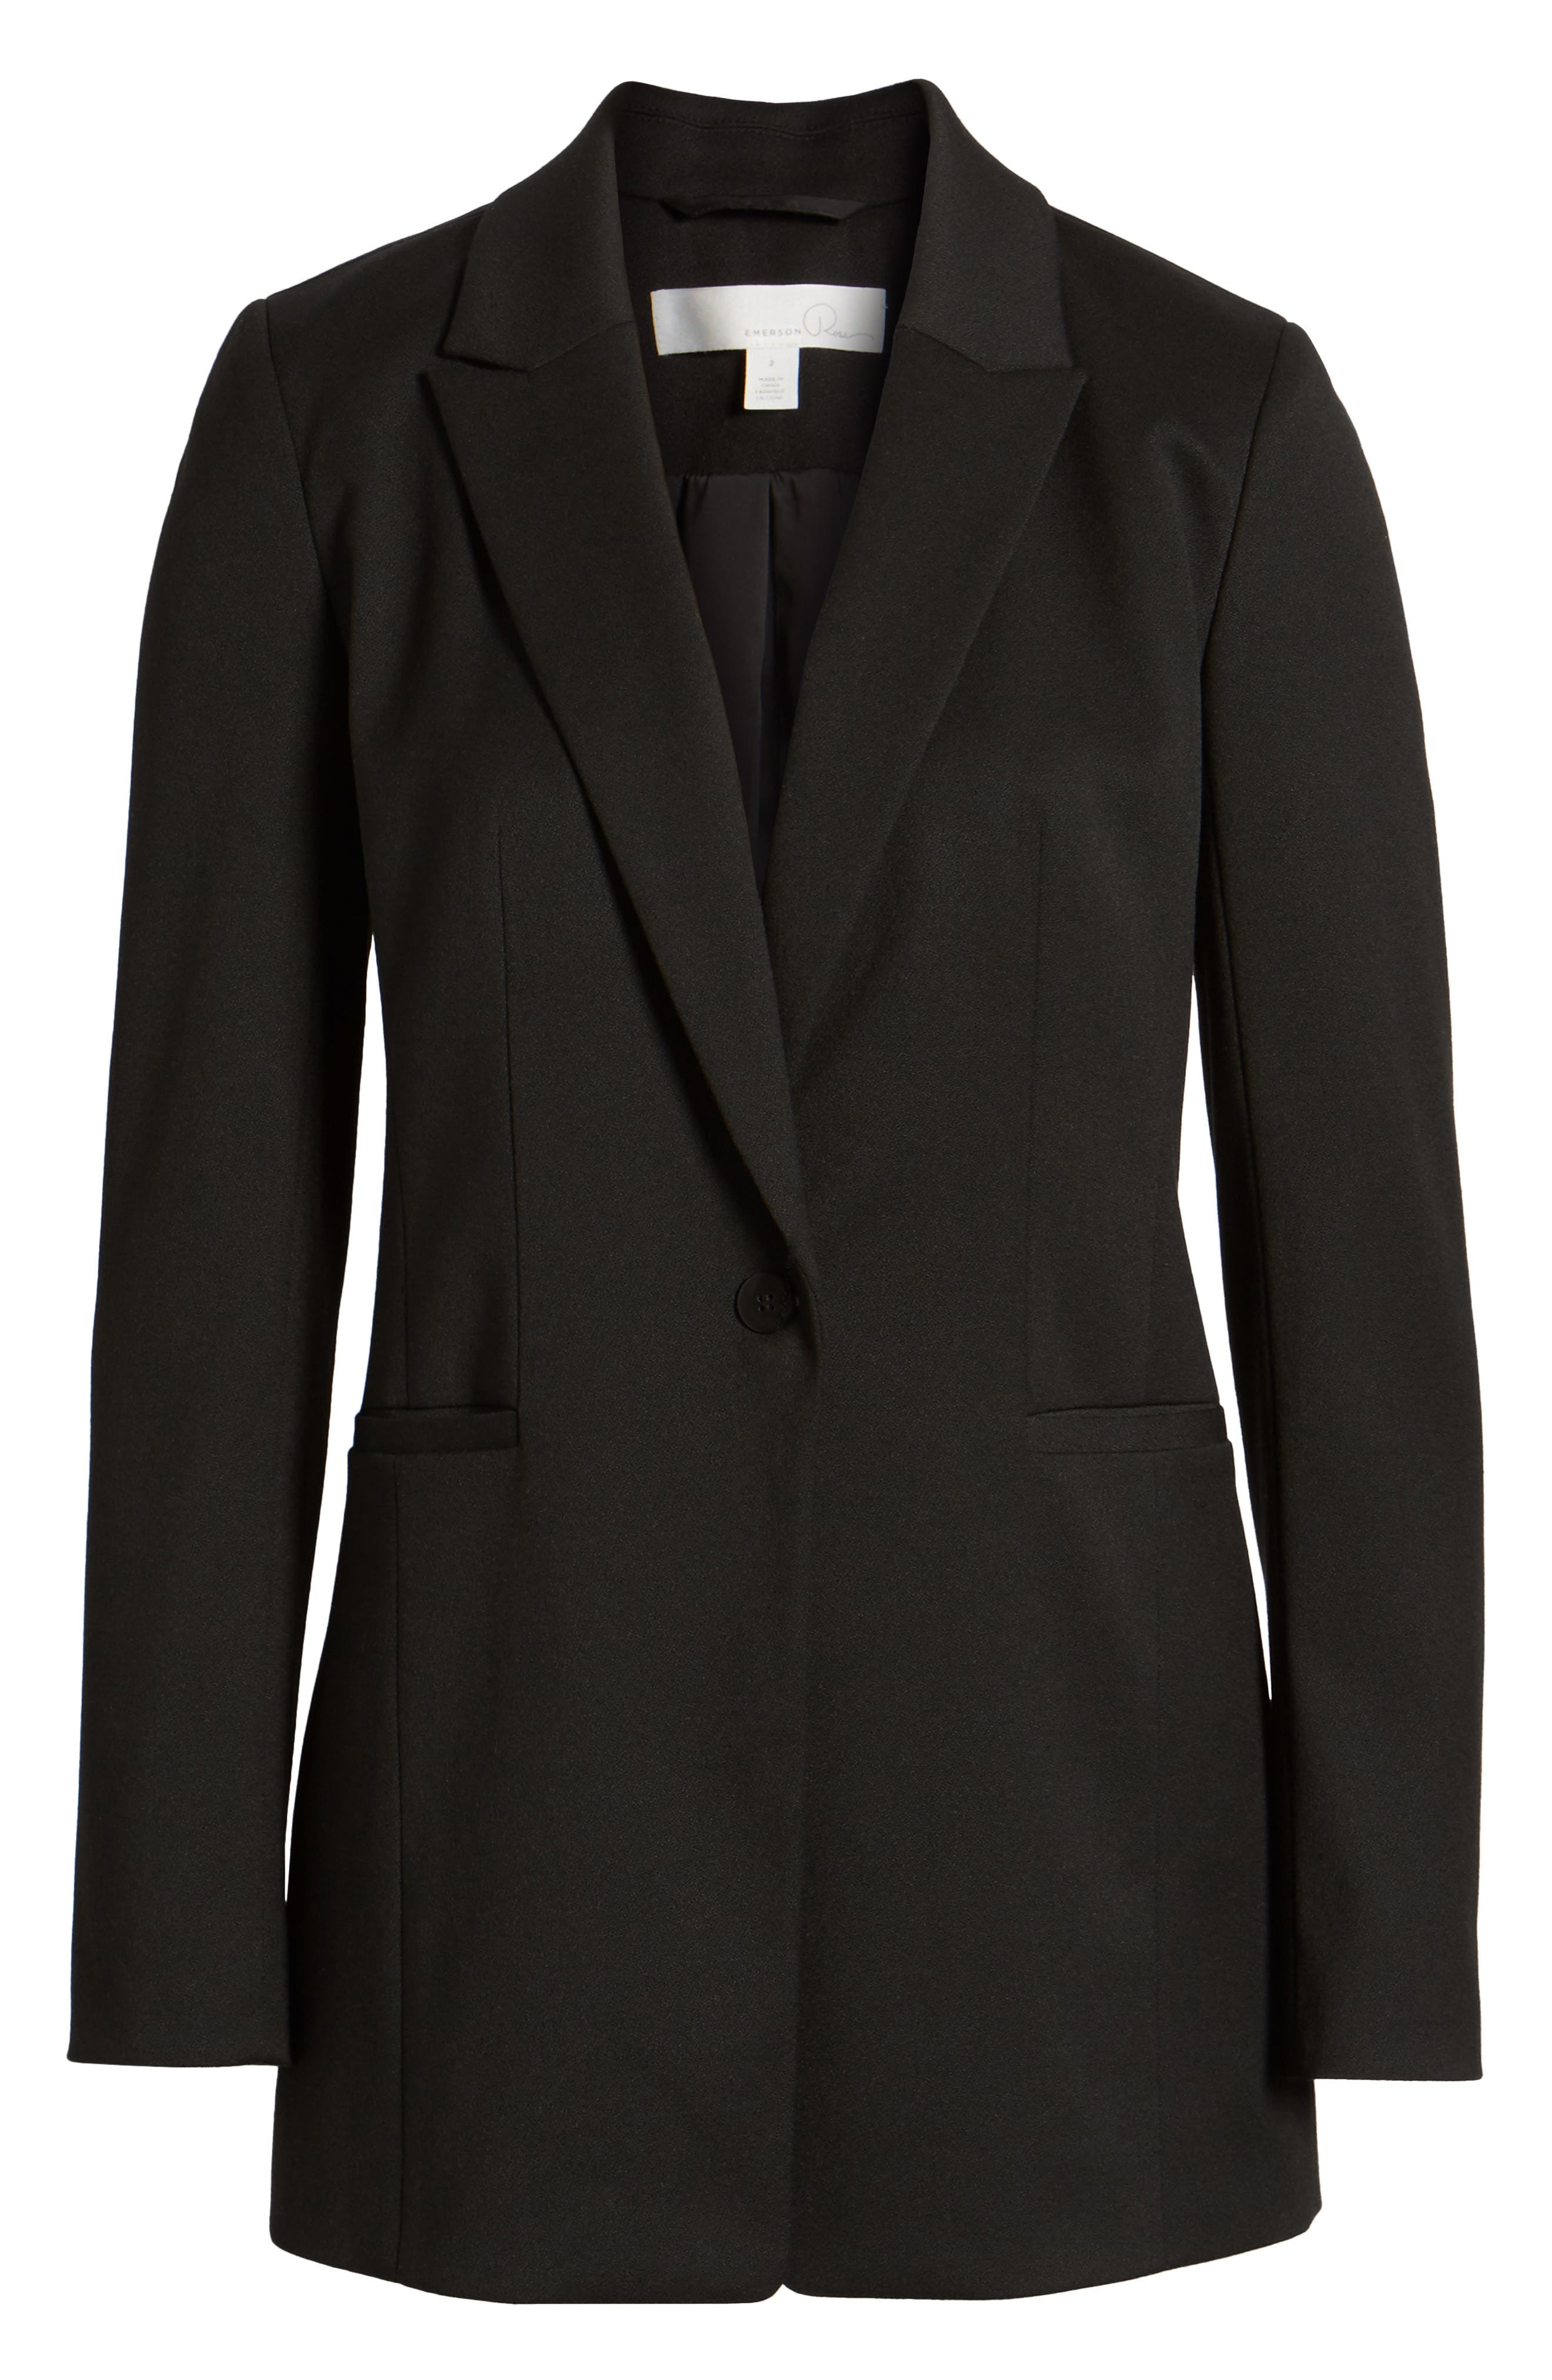 Stretch Crepe Suit Jacket,                             Alternate thumbnail 5, color,                             001